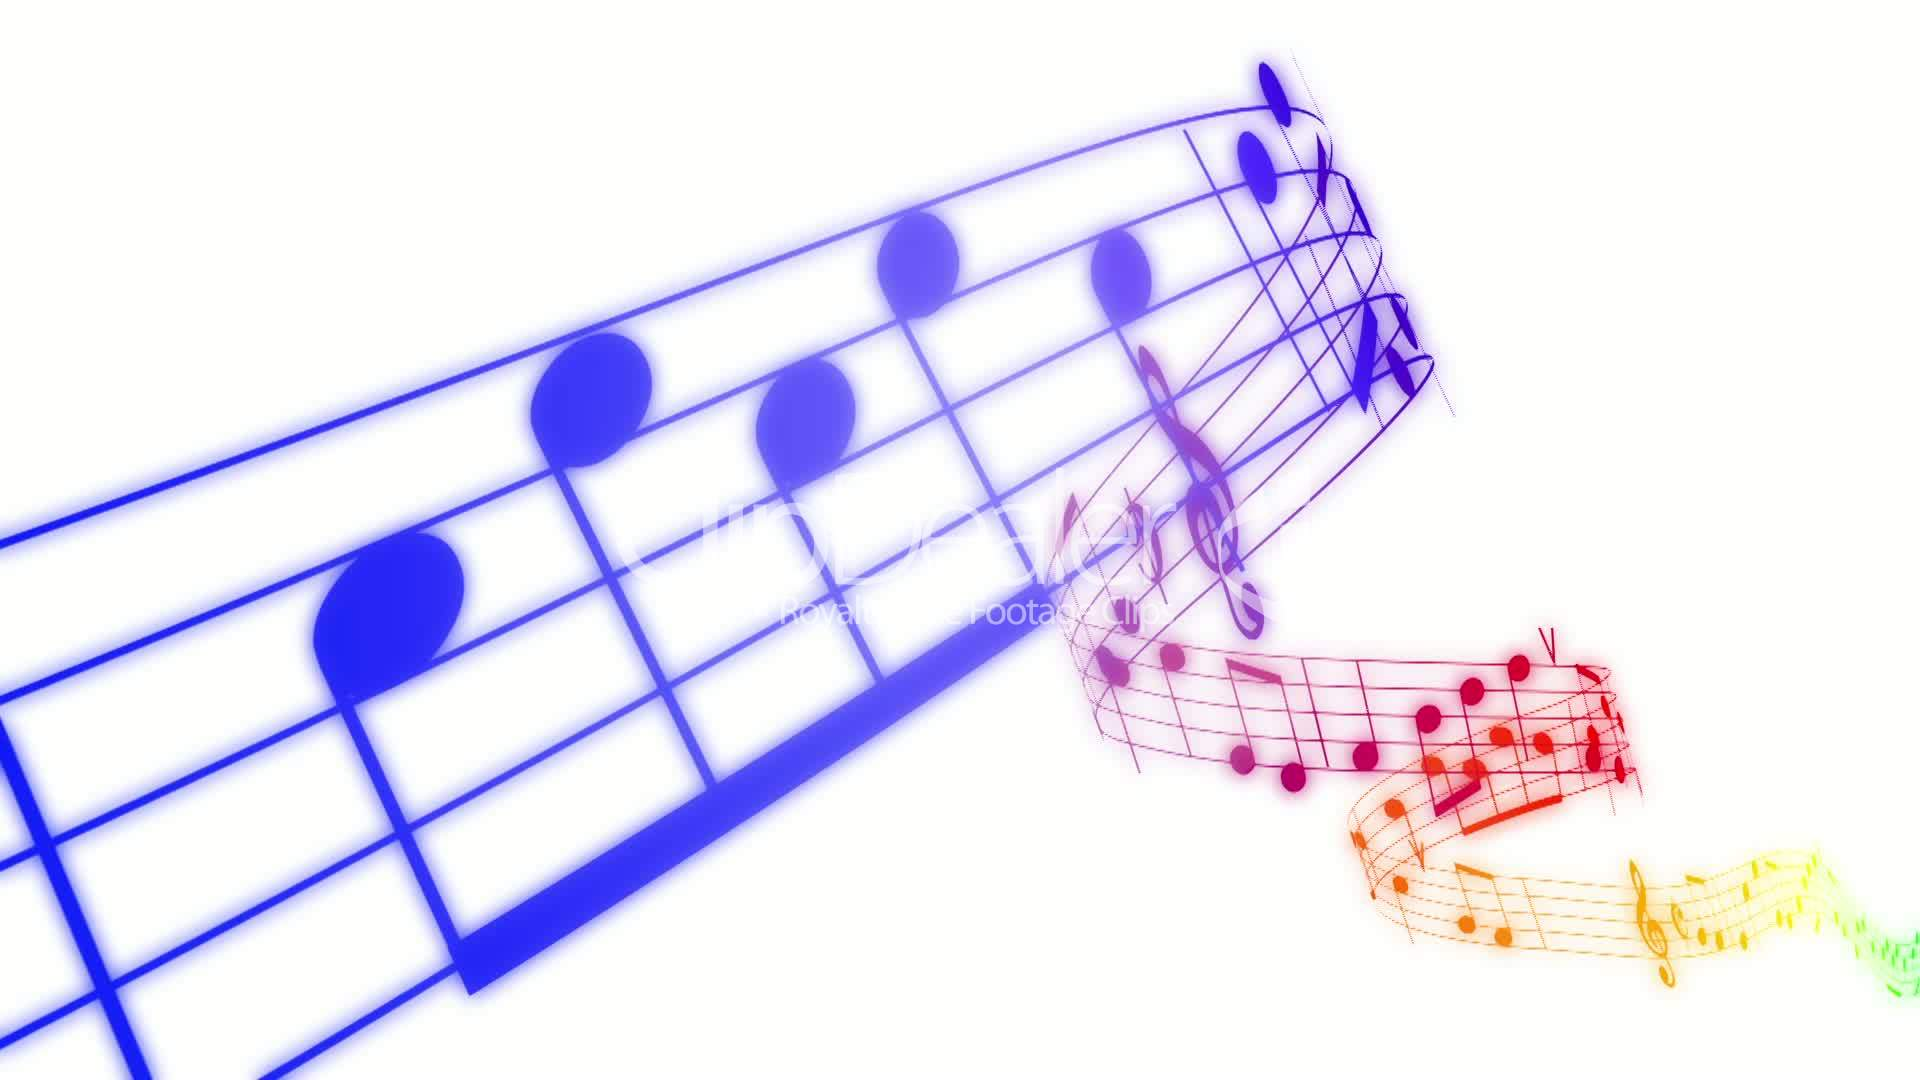 3d Colorful Music Notes Wallpaper: Colorful Music Wallpaper (36 Wallpapers)